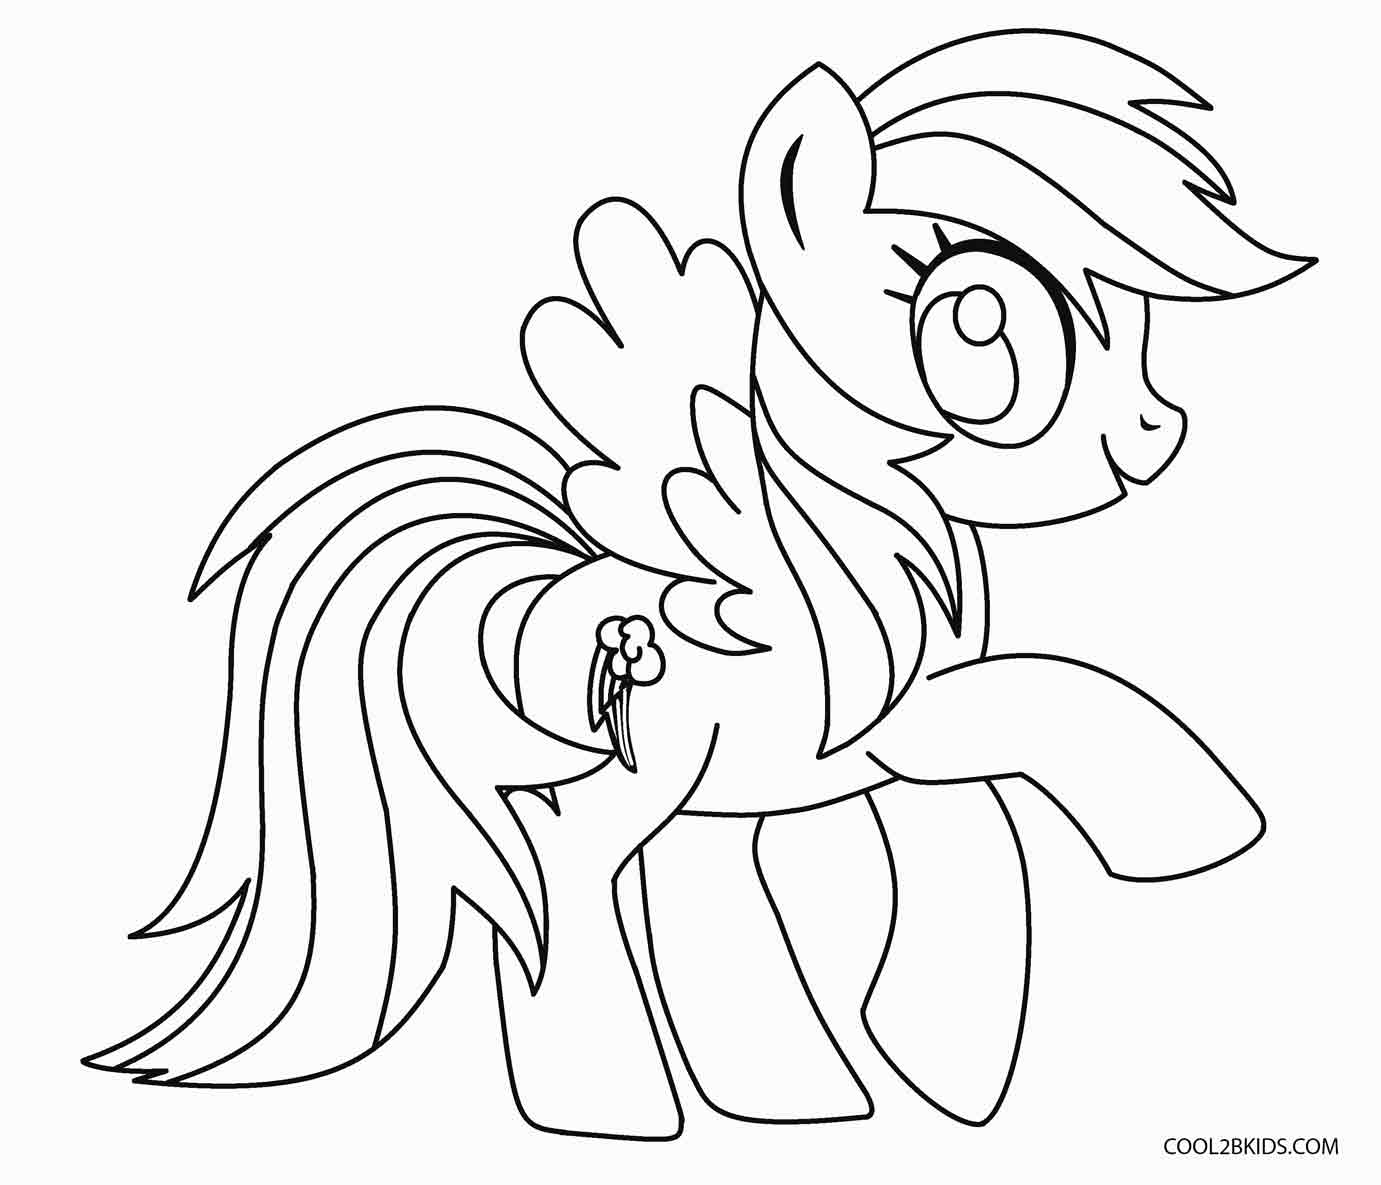 mlp coloring page my little pony fluttershy coloring pages minister coloring coloring page mlp